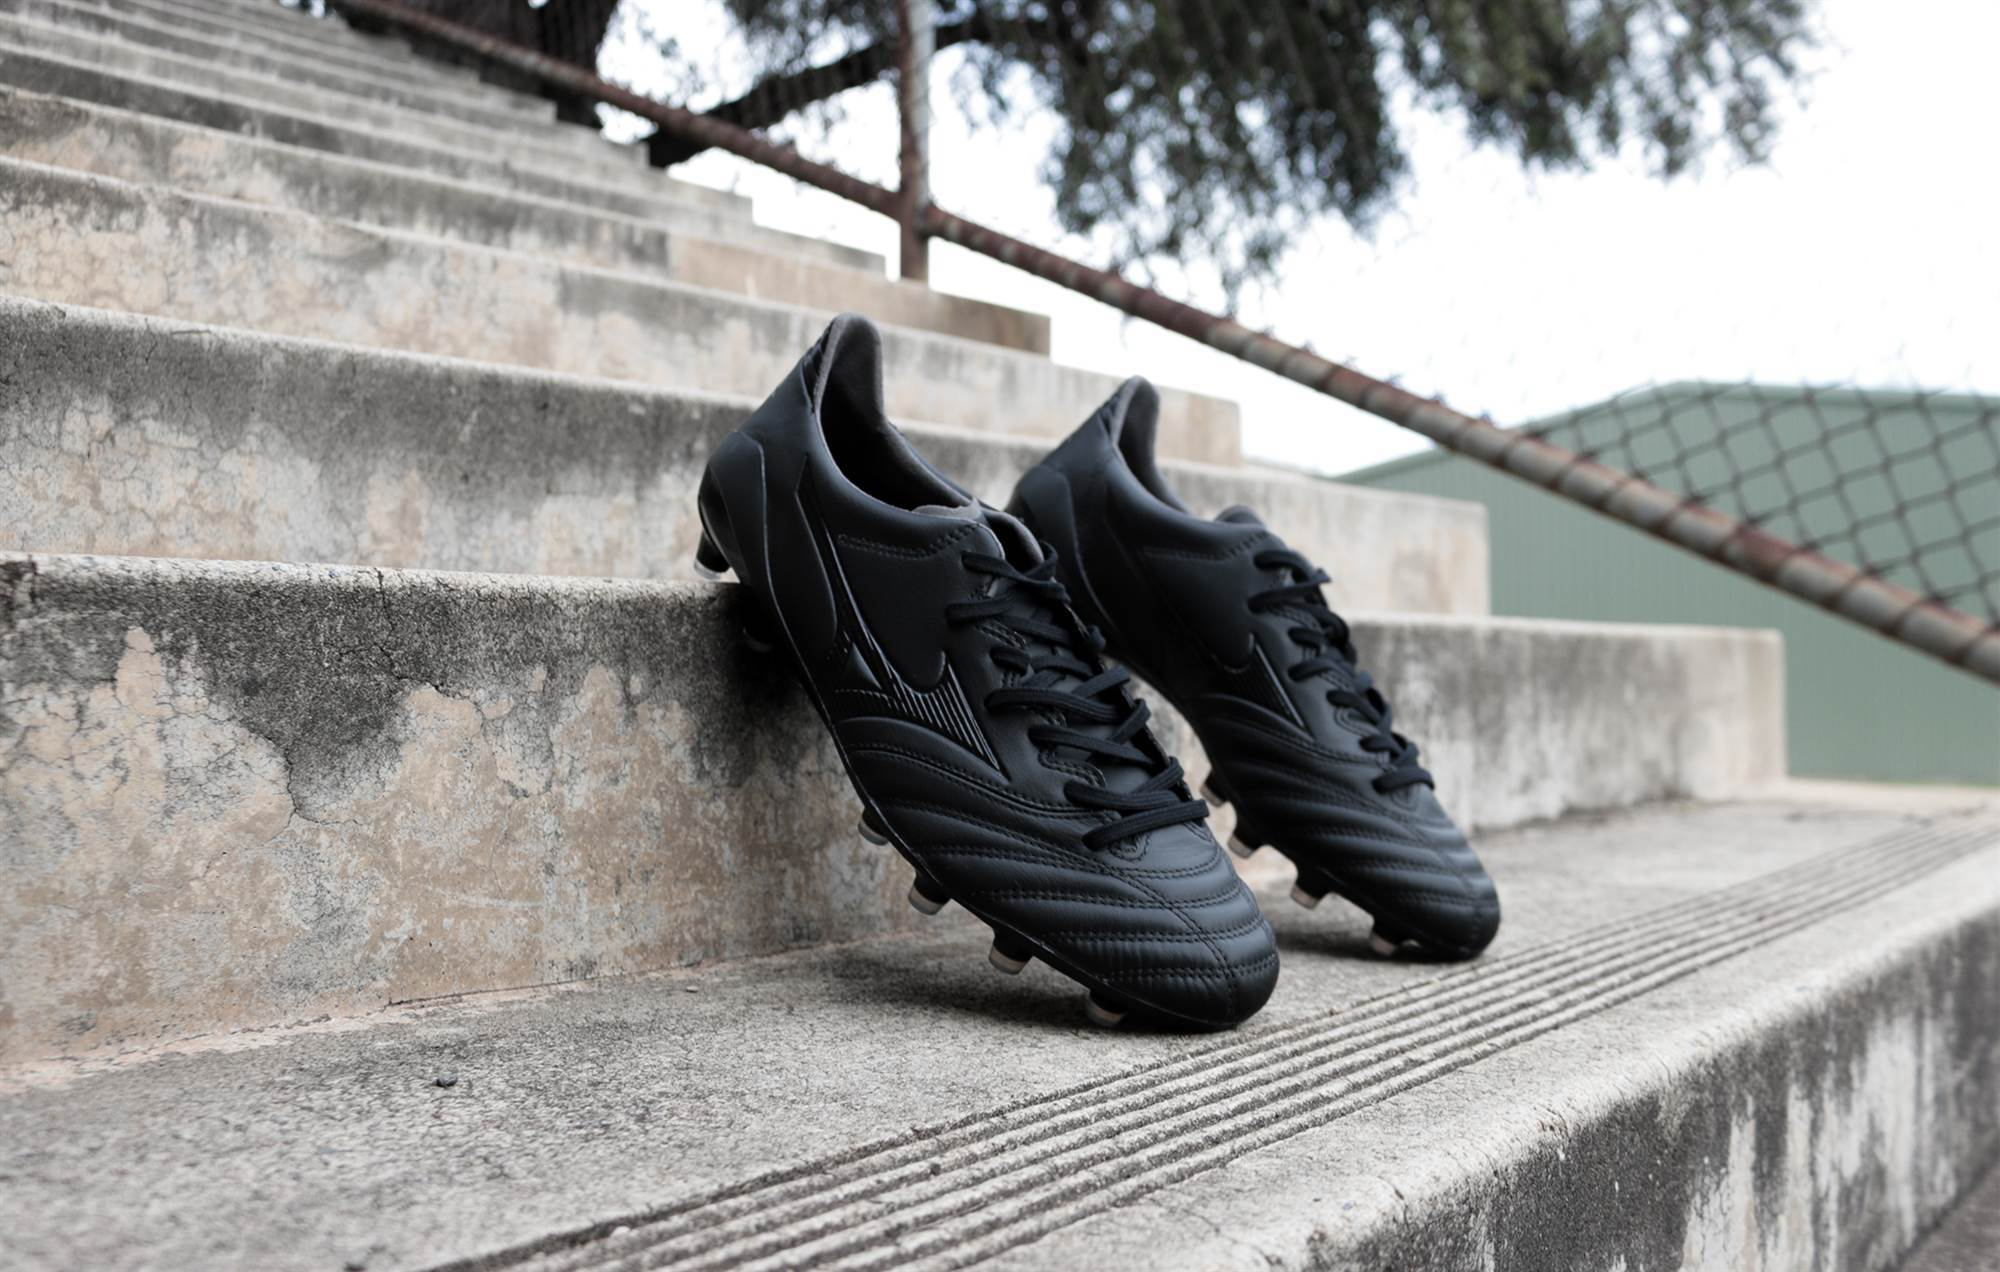 low priced 40df4 6a86f Gallery: Mizuno's deadly blackout Morelia Neo II - Boots ...